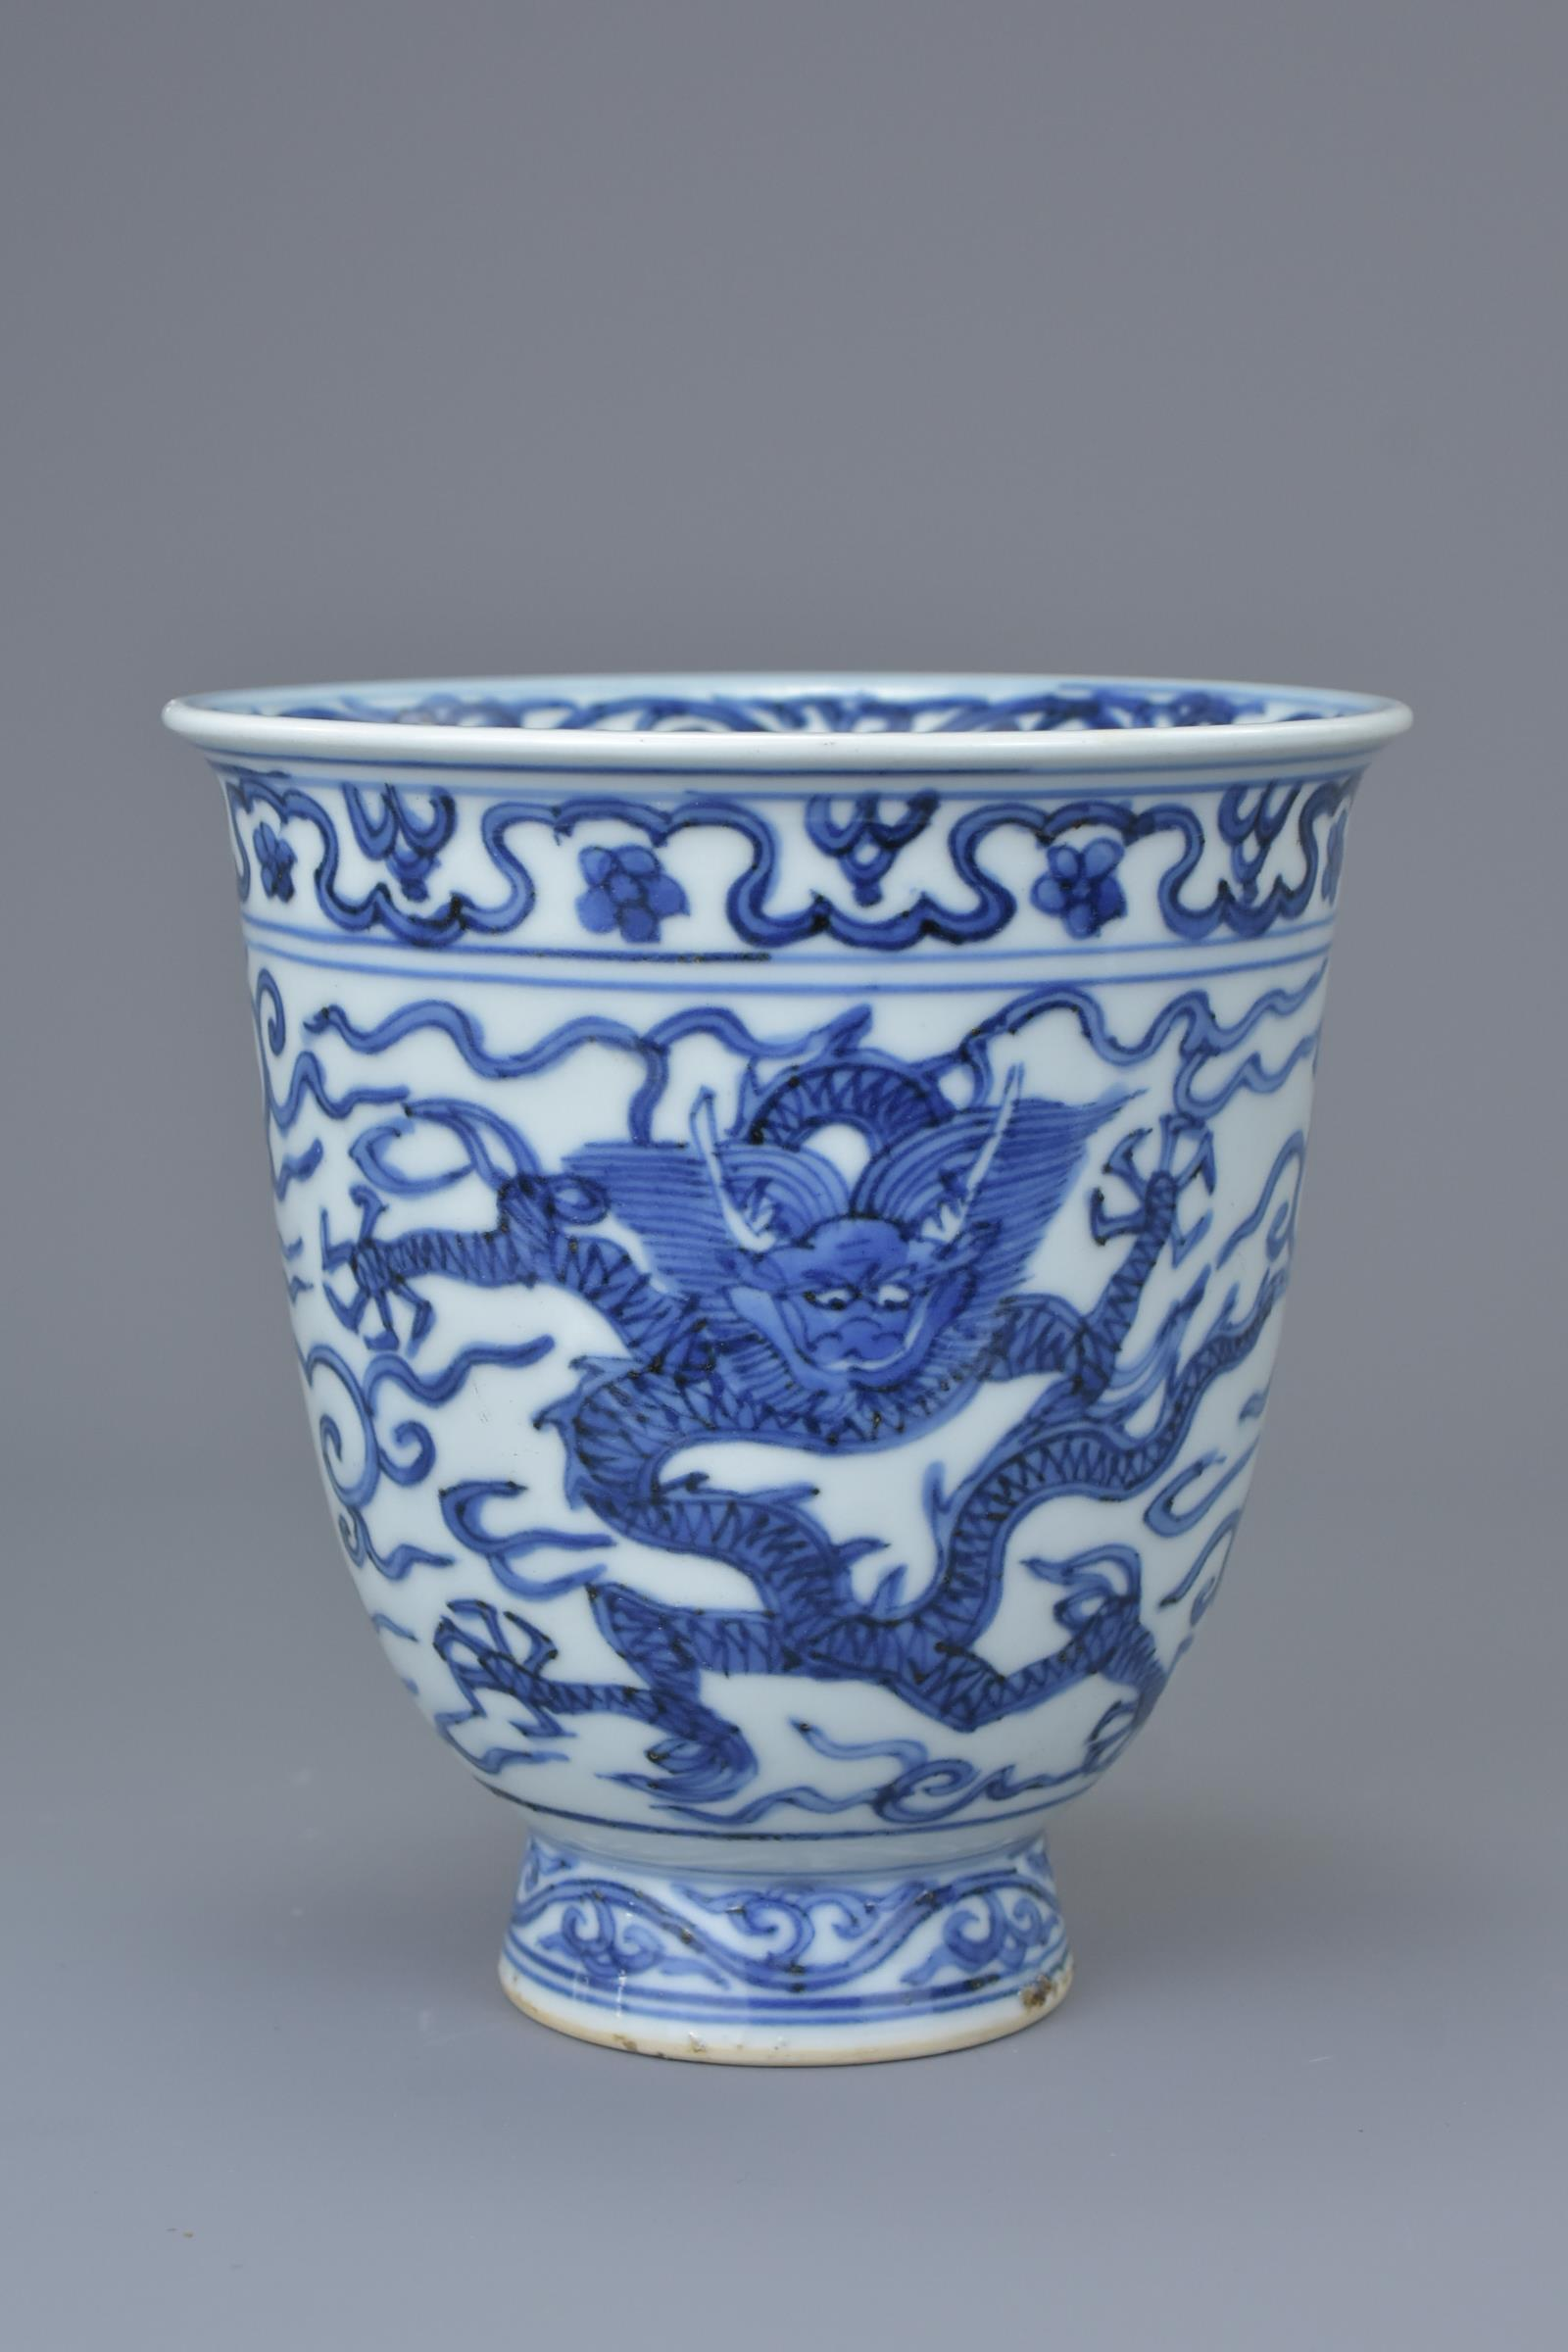 Lot 27 - A Chinese Ming Dynasty or later blue and white porcelain dragon beaker